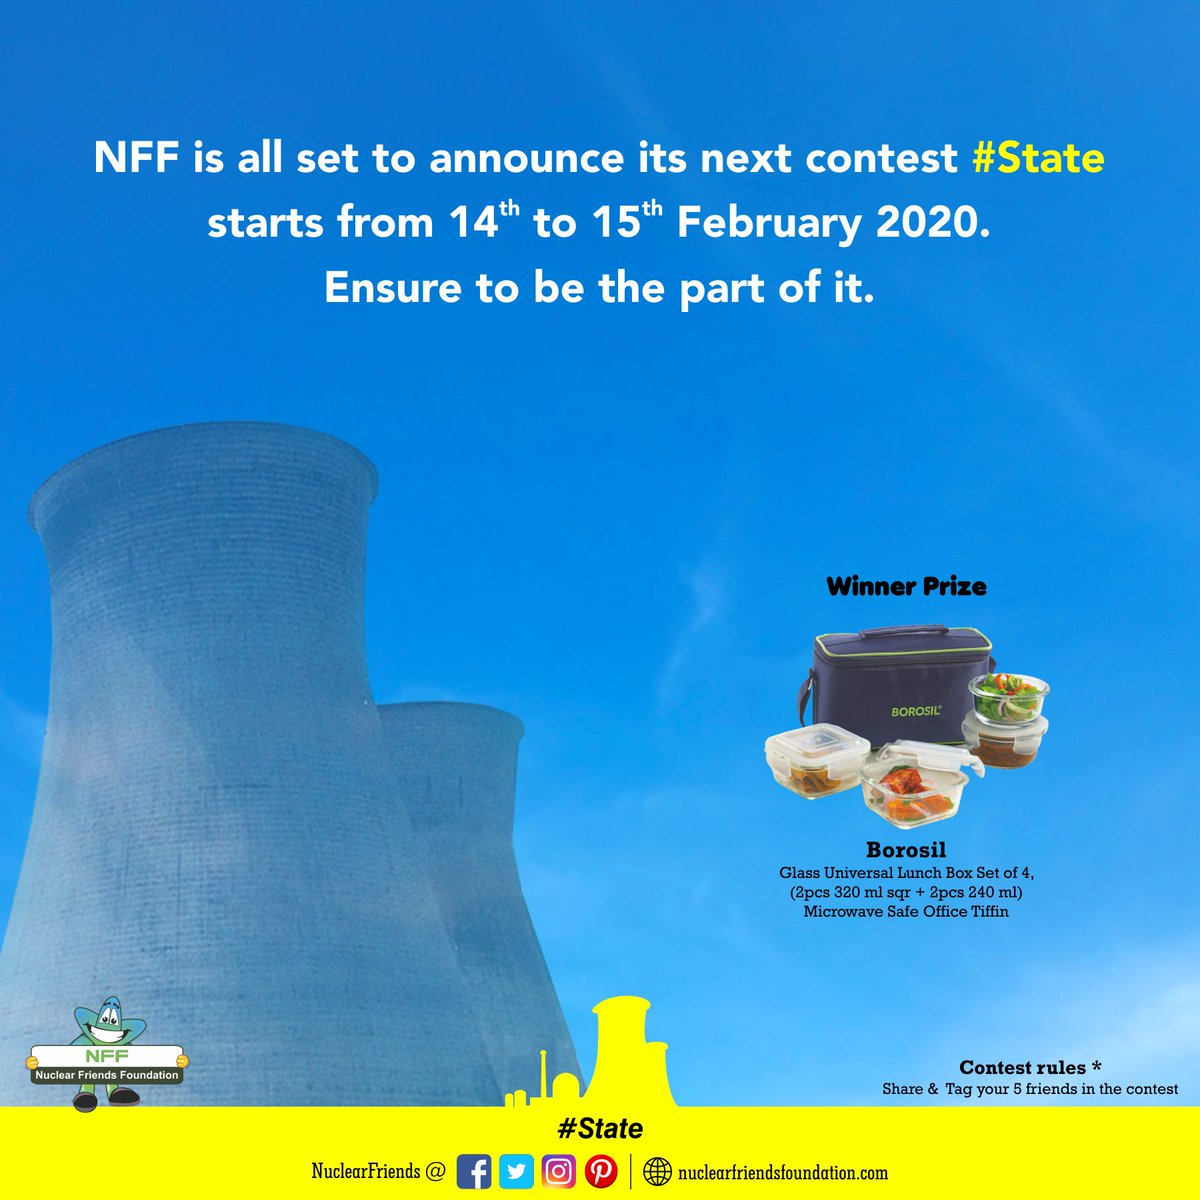 #ContestAlert NFF is all set to announce its next contest #State, starts from 14th to 15th February 2020. Ensure to be the part of it.  Reach us @ http://nuclearfriendsfoundation.com  #Contest #like #RT #comment #chance #Win #prizes #Today #goodluck #giveaway #competition #TuesdayMotivation